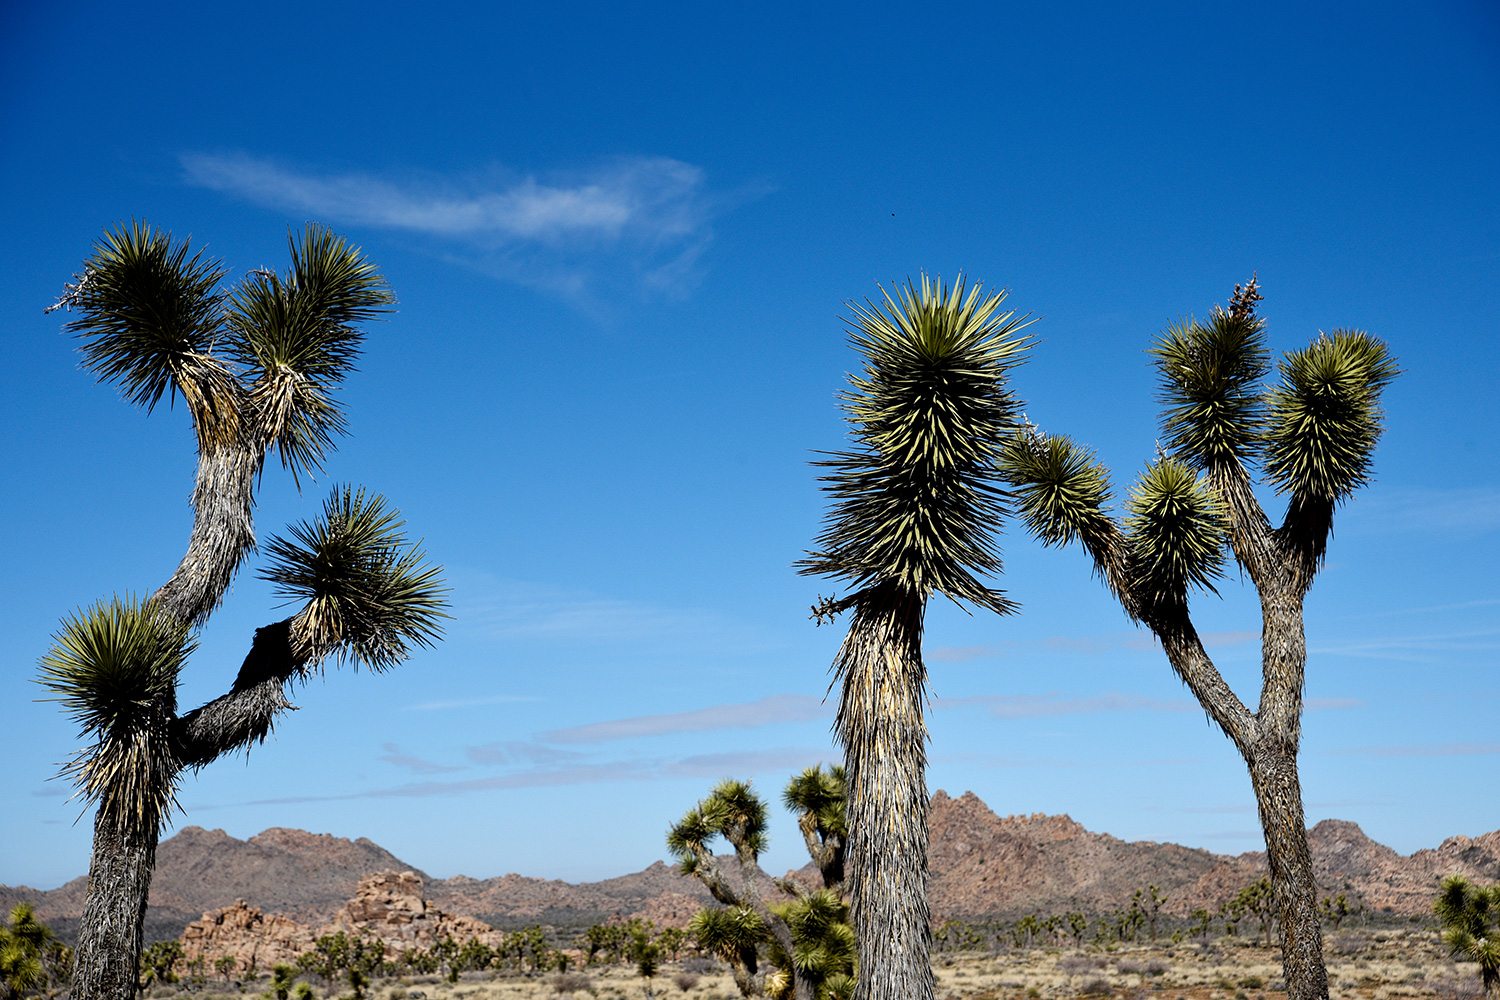 Joshua trees grow in front of massive rock formations in Joshua Tree National Park in California